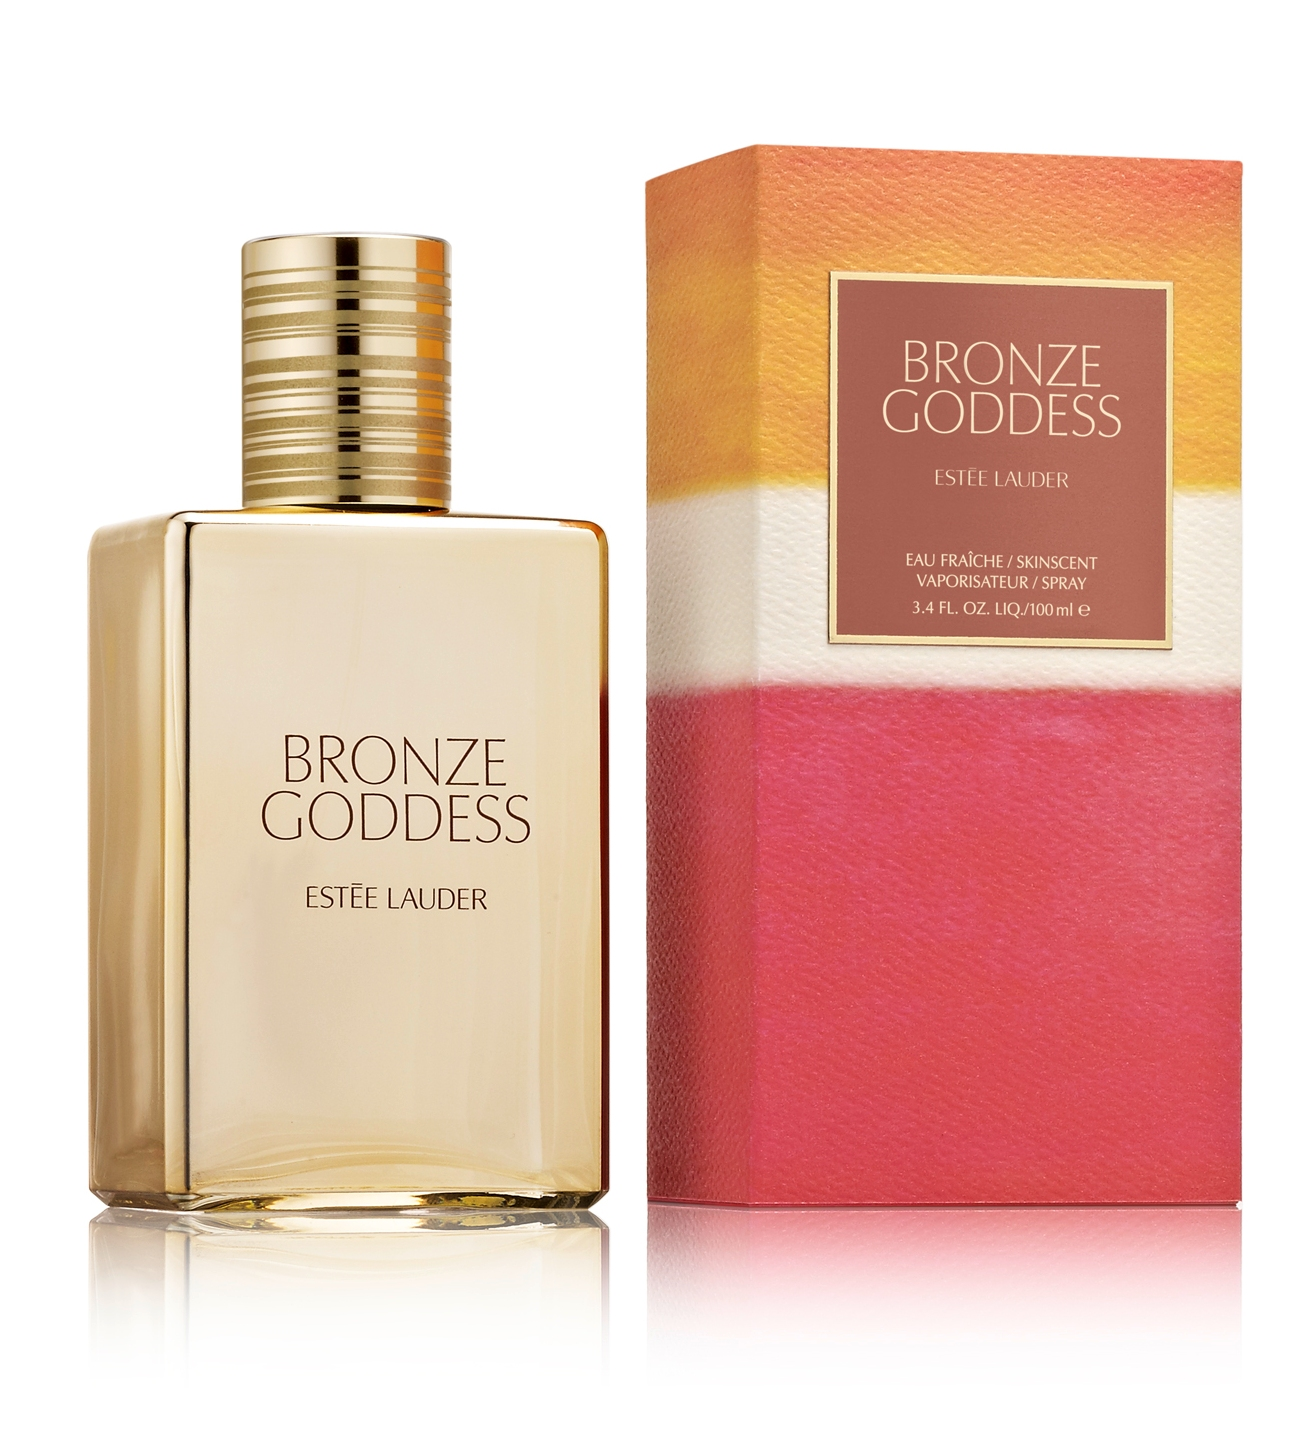 Bronze_Goddess_Fragrance_Emballage_2014